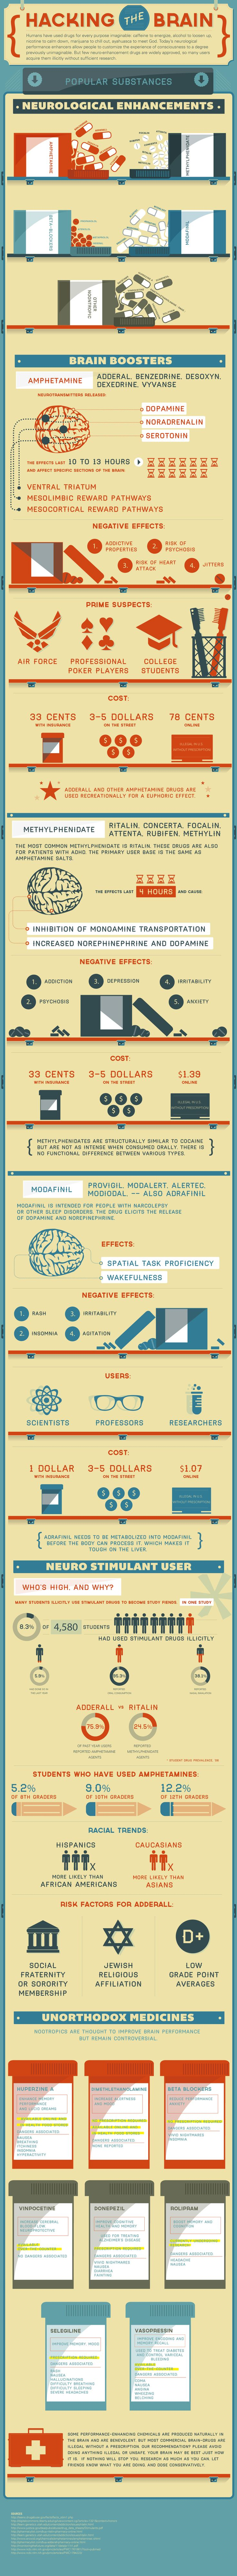 Hacking the Brain with Prescription Drugs [infographic]